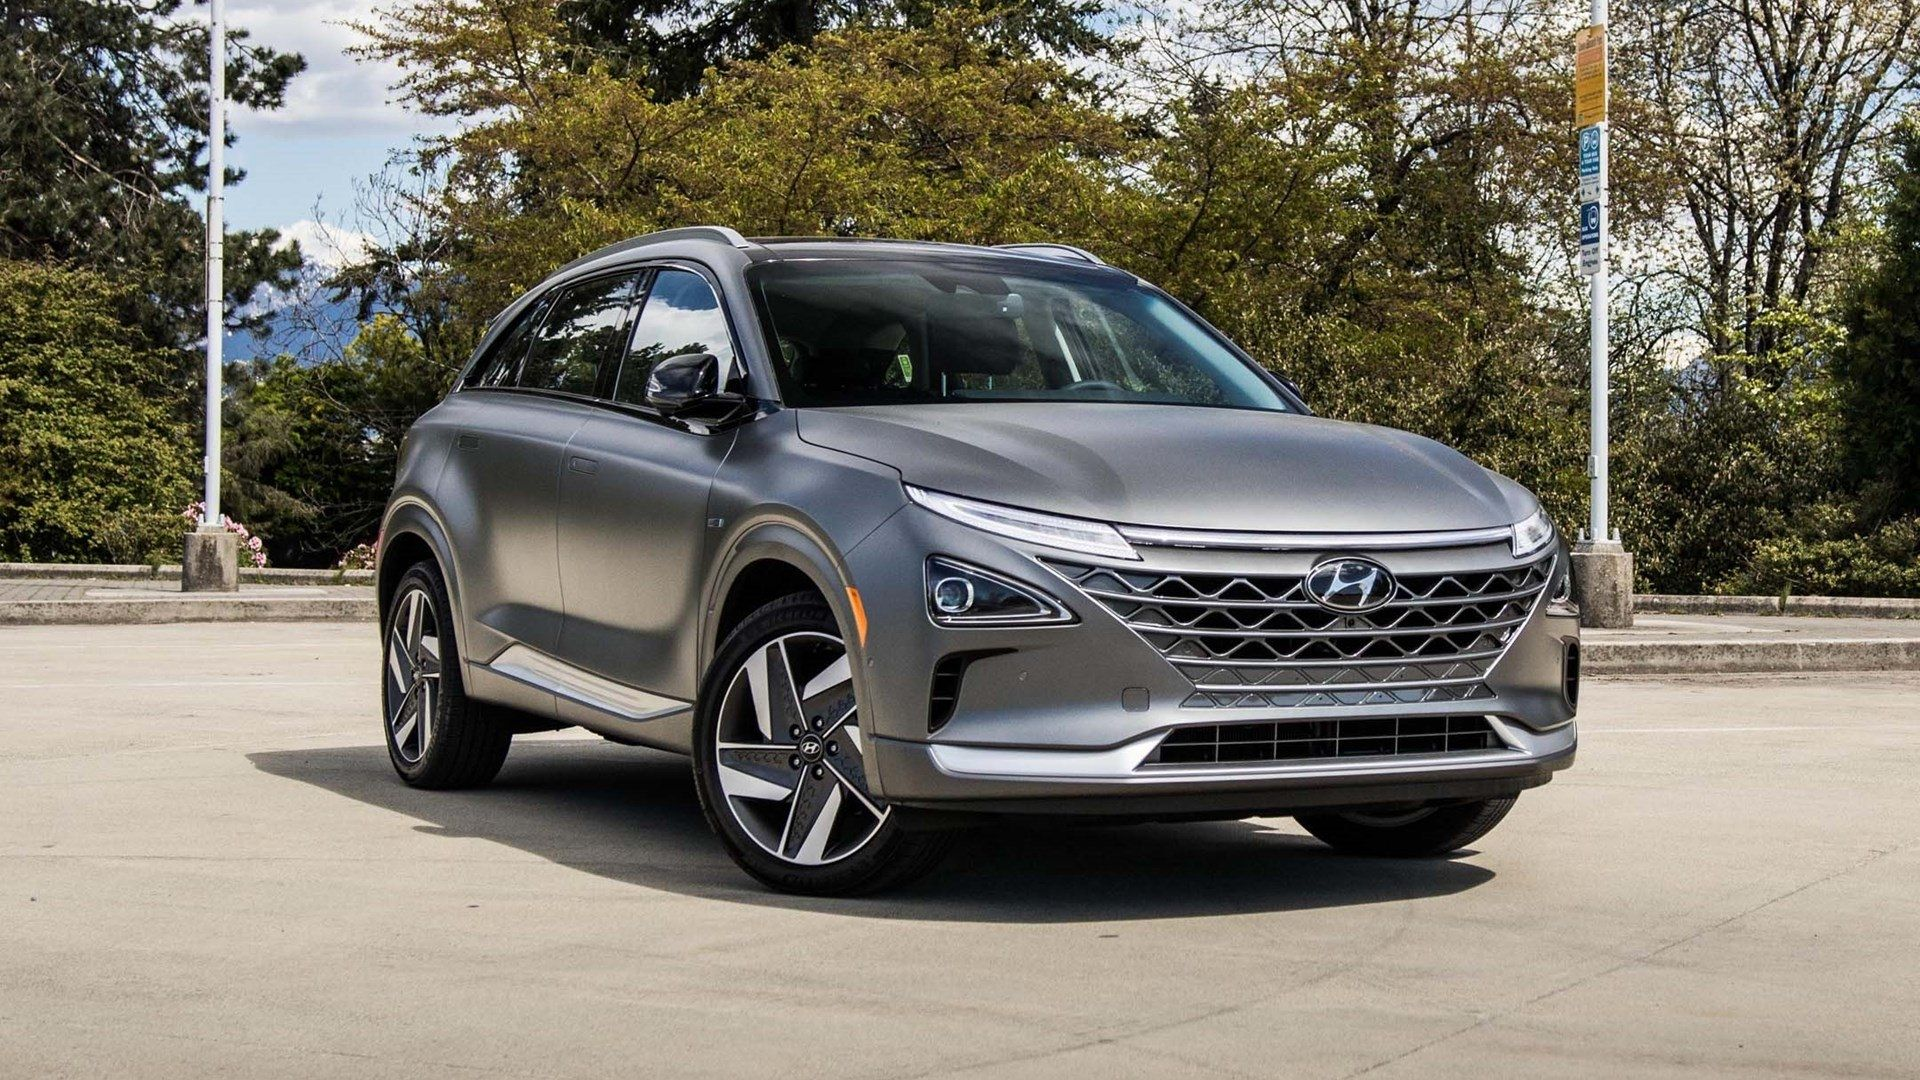 2020 Hyundai Nexo For Sale New Interior Hyundai Living In Car Hyundai Veloster